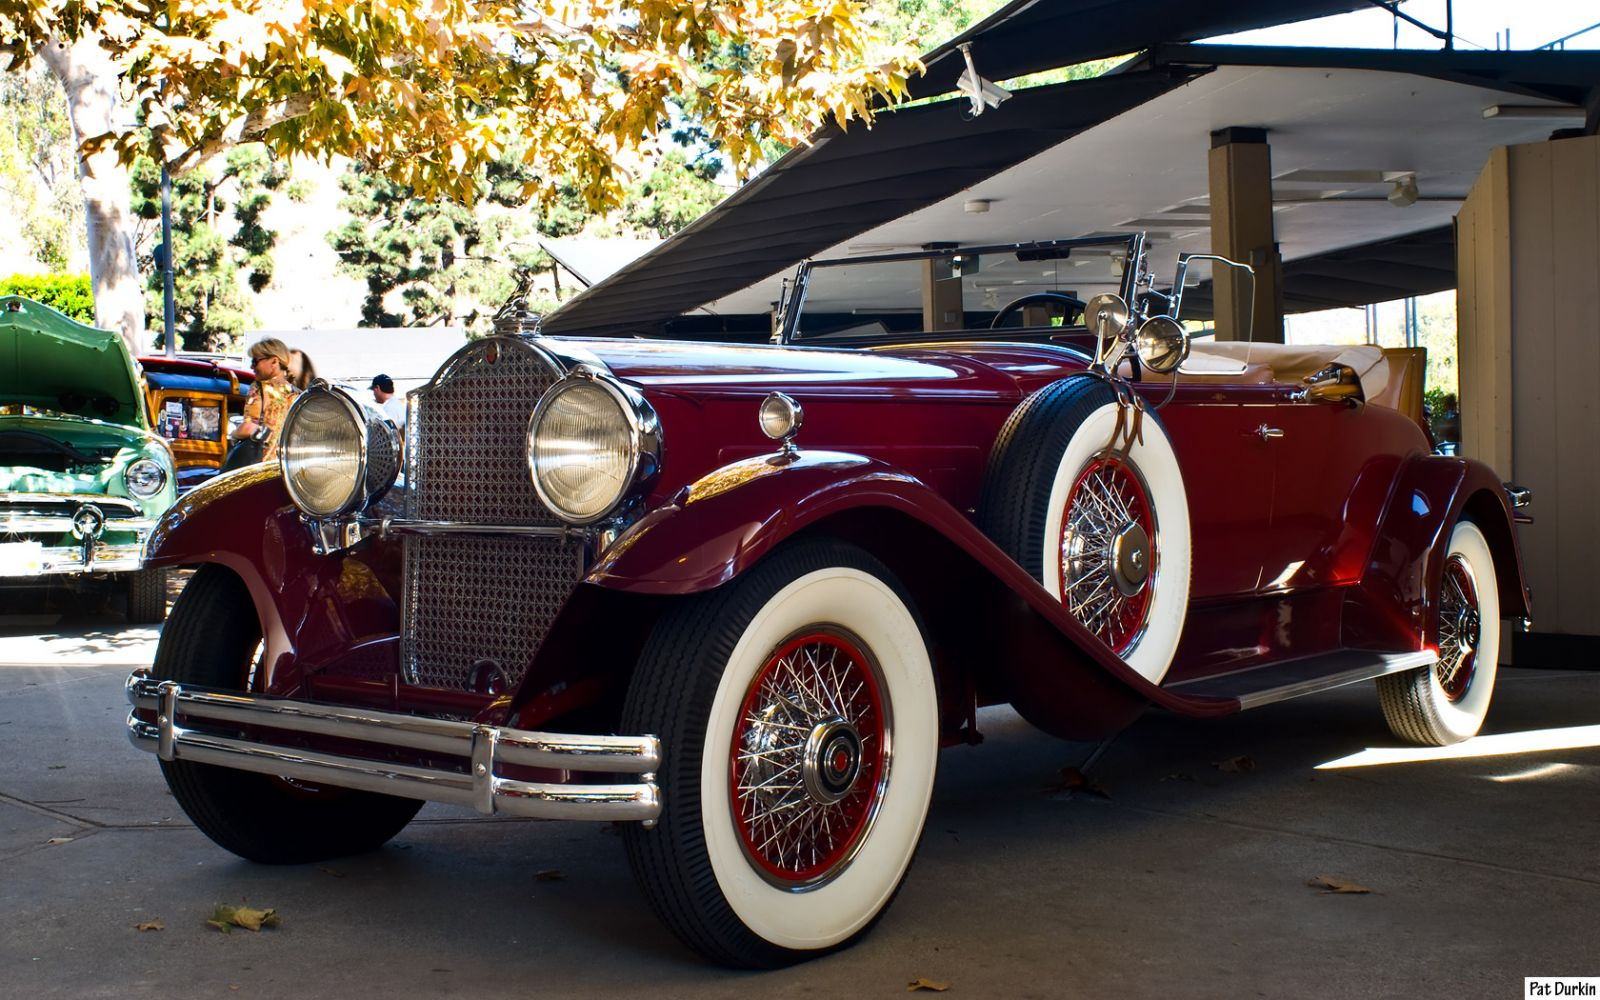 1930 Packard 745 Roadster - fvl